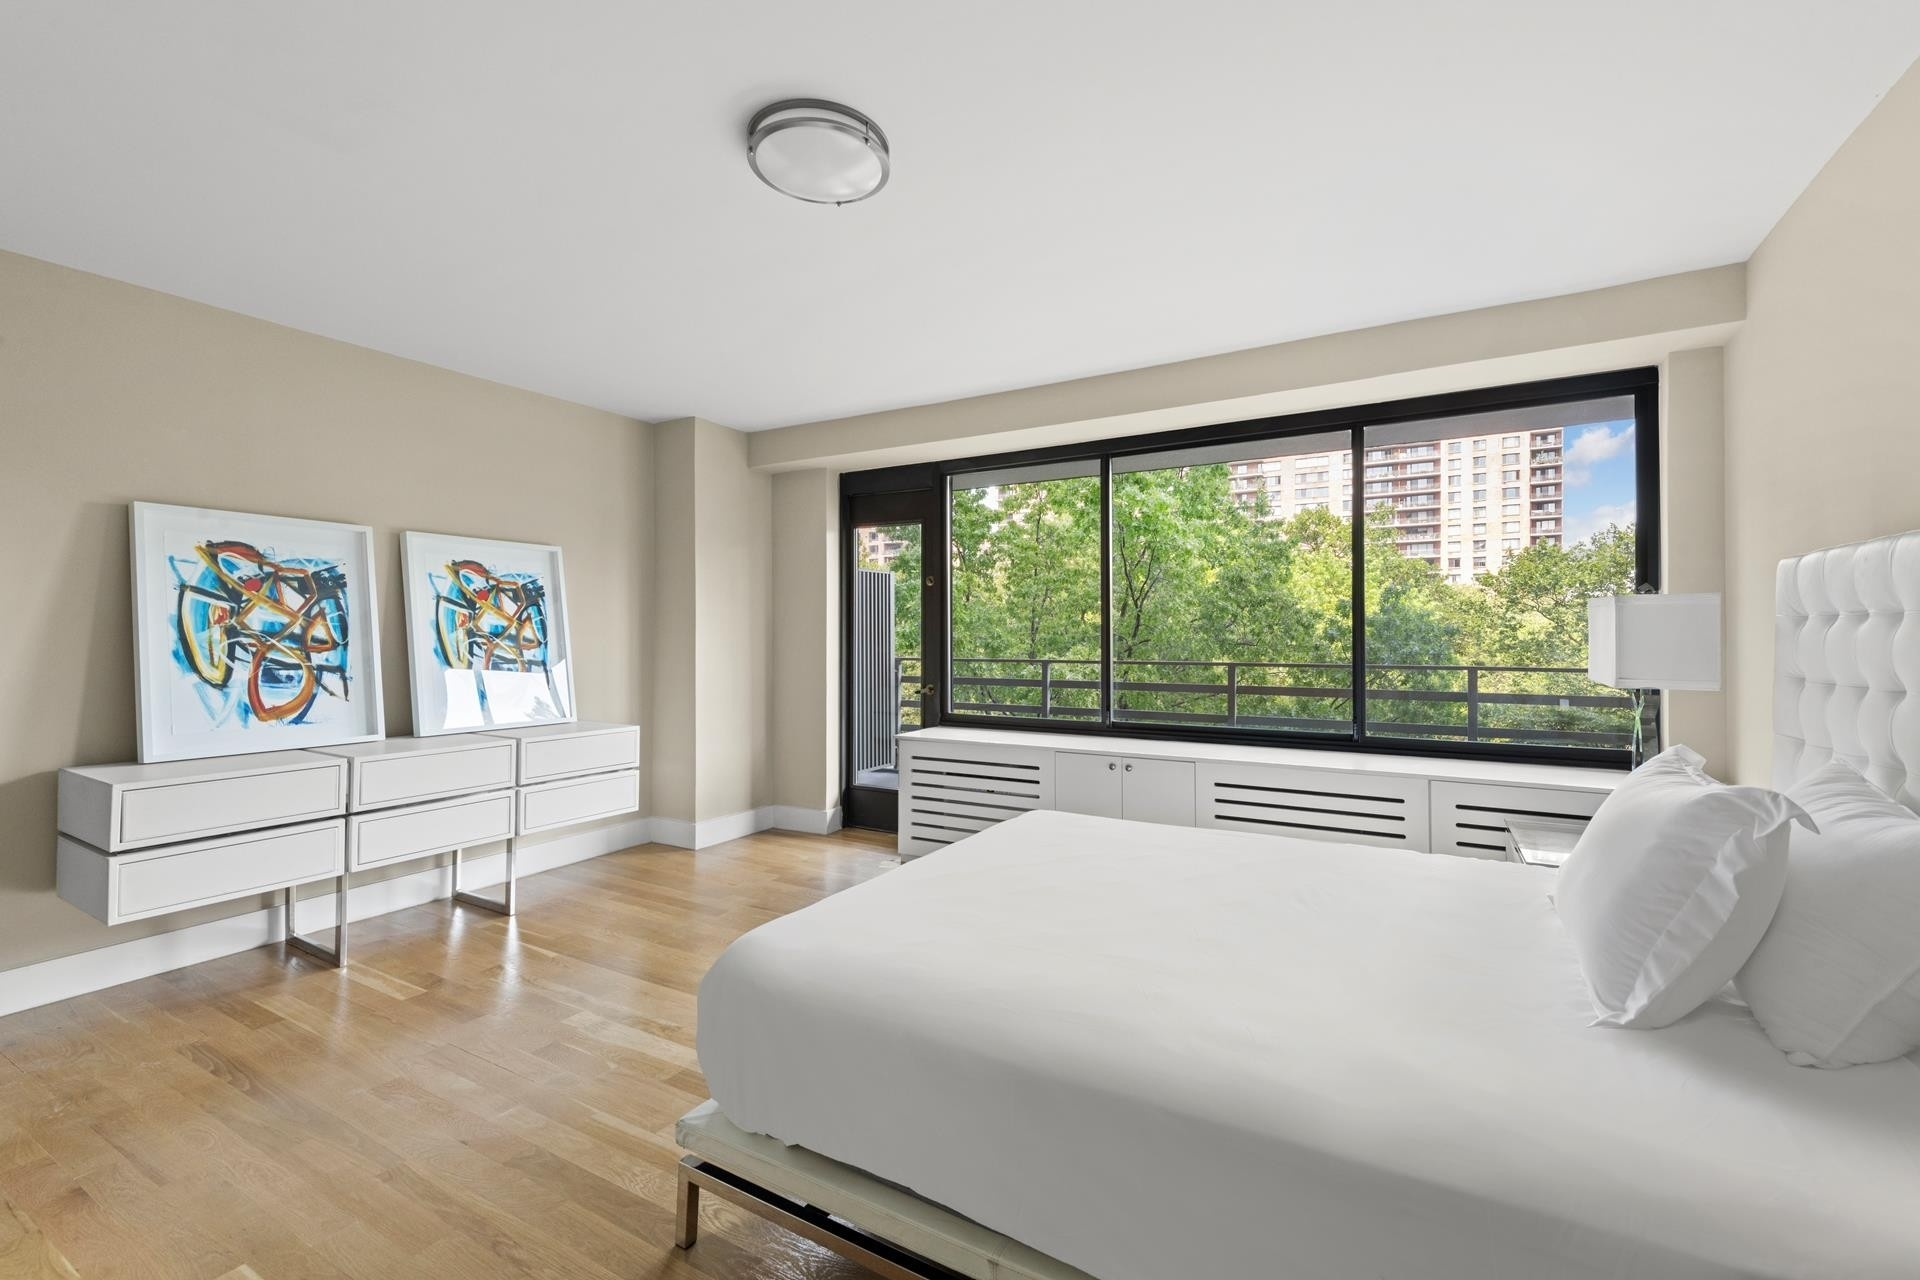 11. Condominiums for Sale at Vaux, The (Park Wes, 372 CENTRAL PARK W, 5BC Manhattan Valley, New York, NY 10025